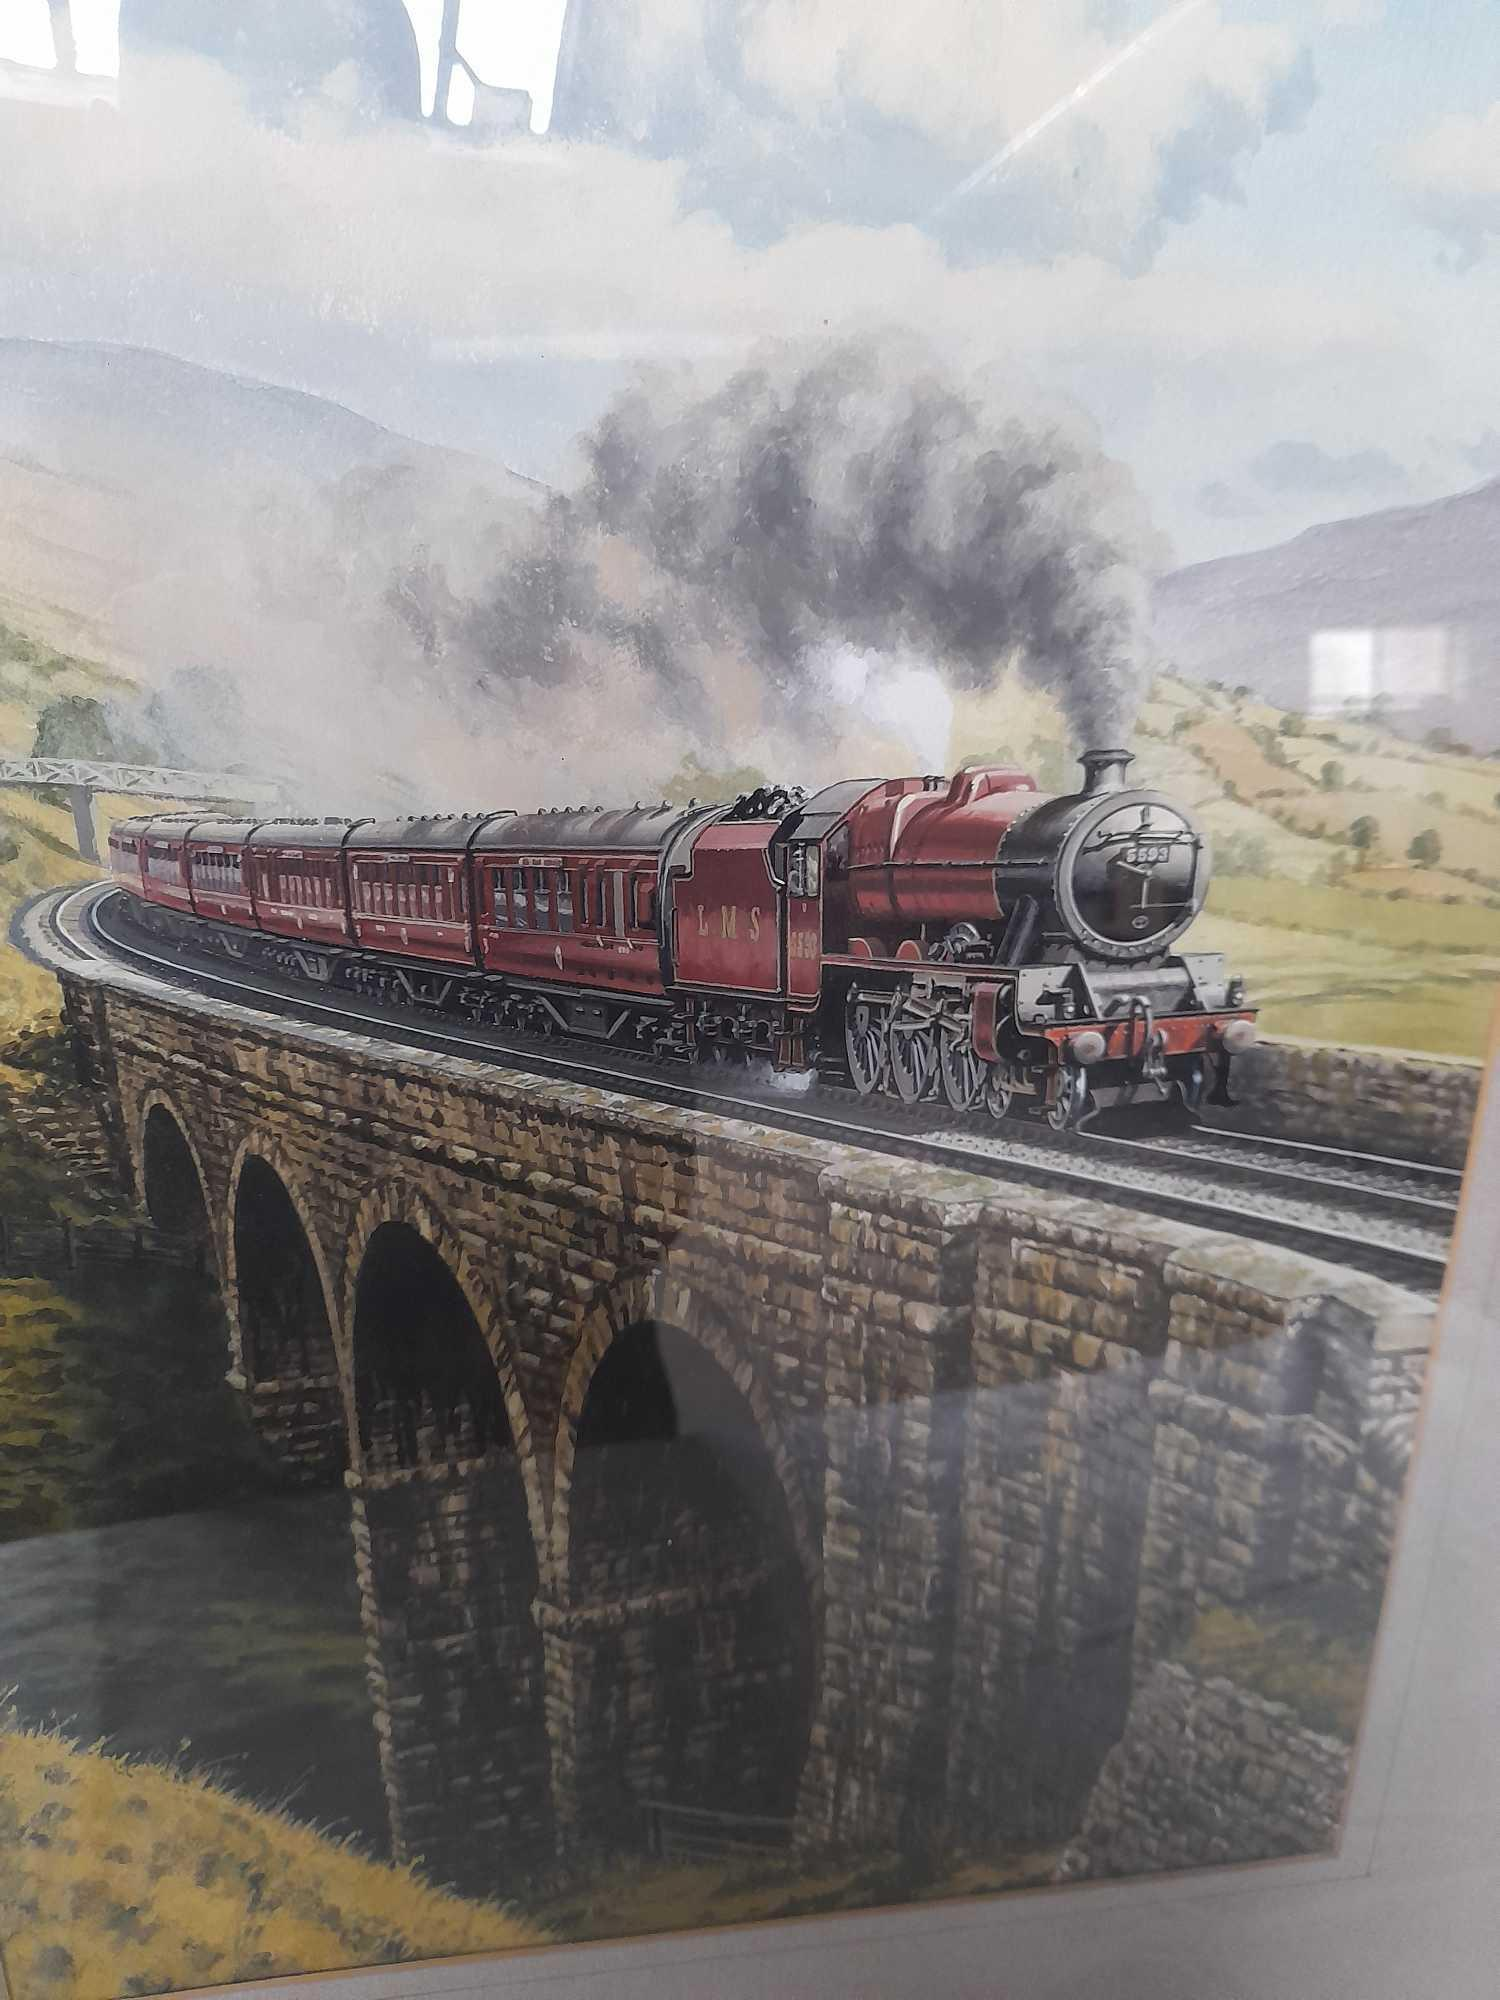 W C PAINTING BY G HEIRON 1990 JUBILEE 5593 ON VIADUCT - Image 2 of 3